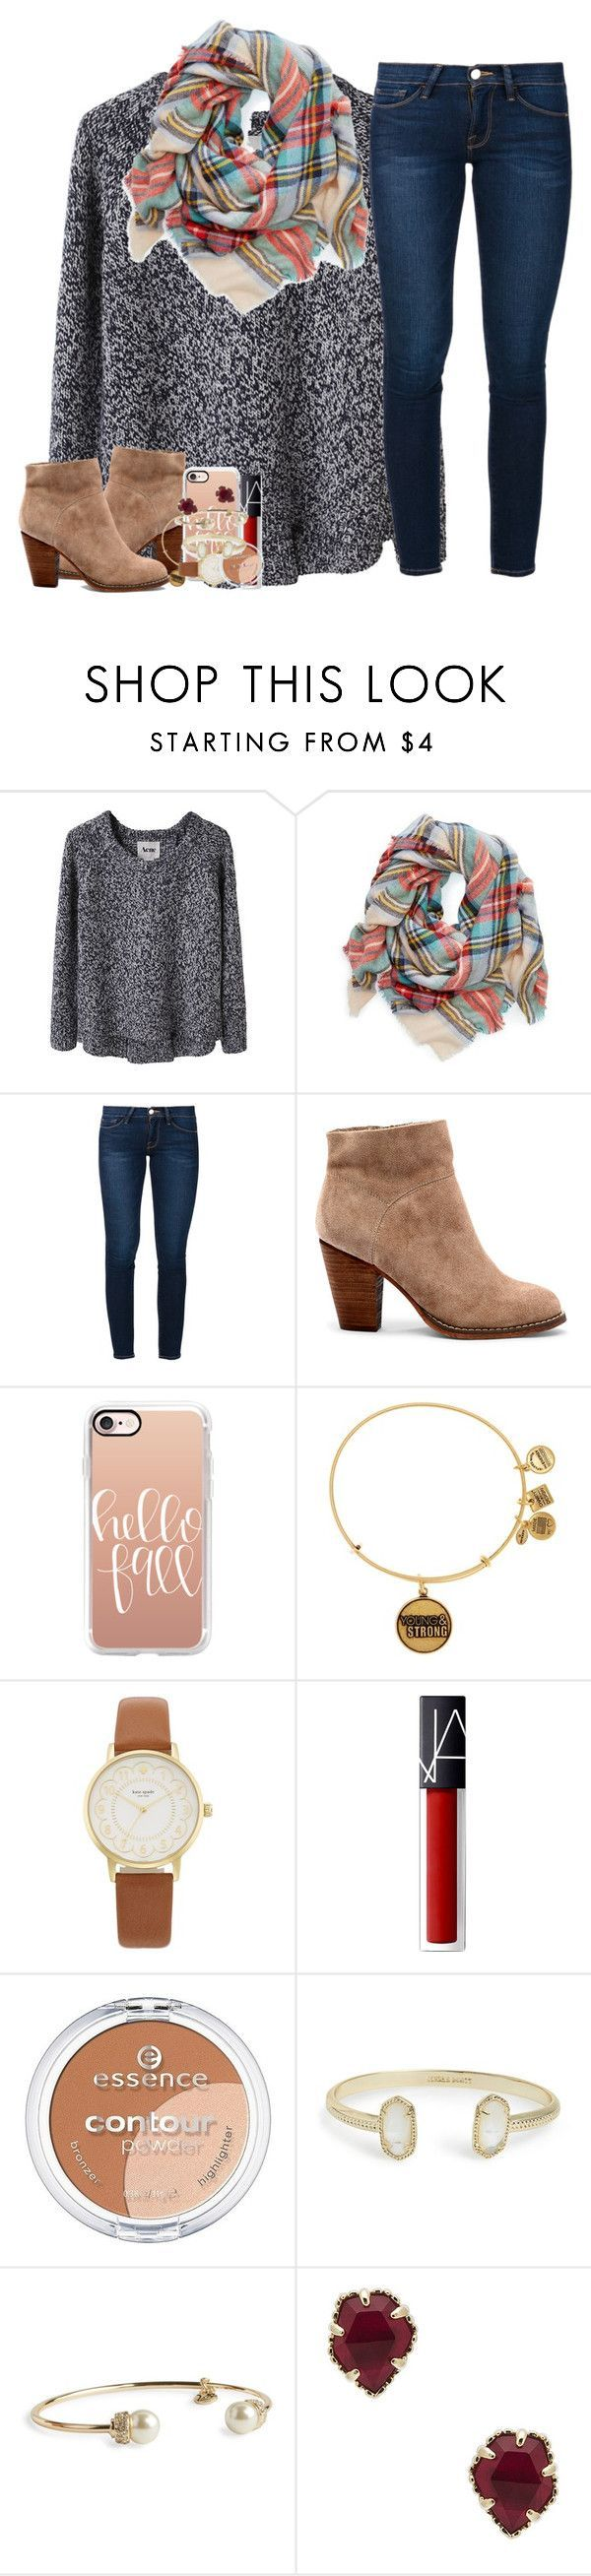 """""""{ i want you to be mine again, baby }"""" by ellaswiftie13 ❤️ liked on Polyvore featuring Acne Studios, Frame, Sole Society, Casetify, Alex and Ani, Kate Spade, NARS Cosmetics, Essence, Kendra Scott and Vera Bradley"""